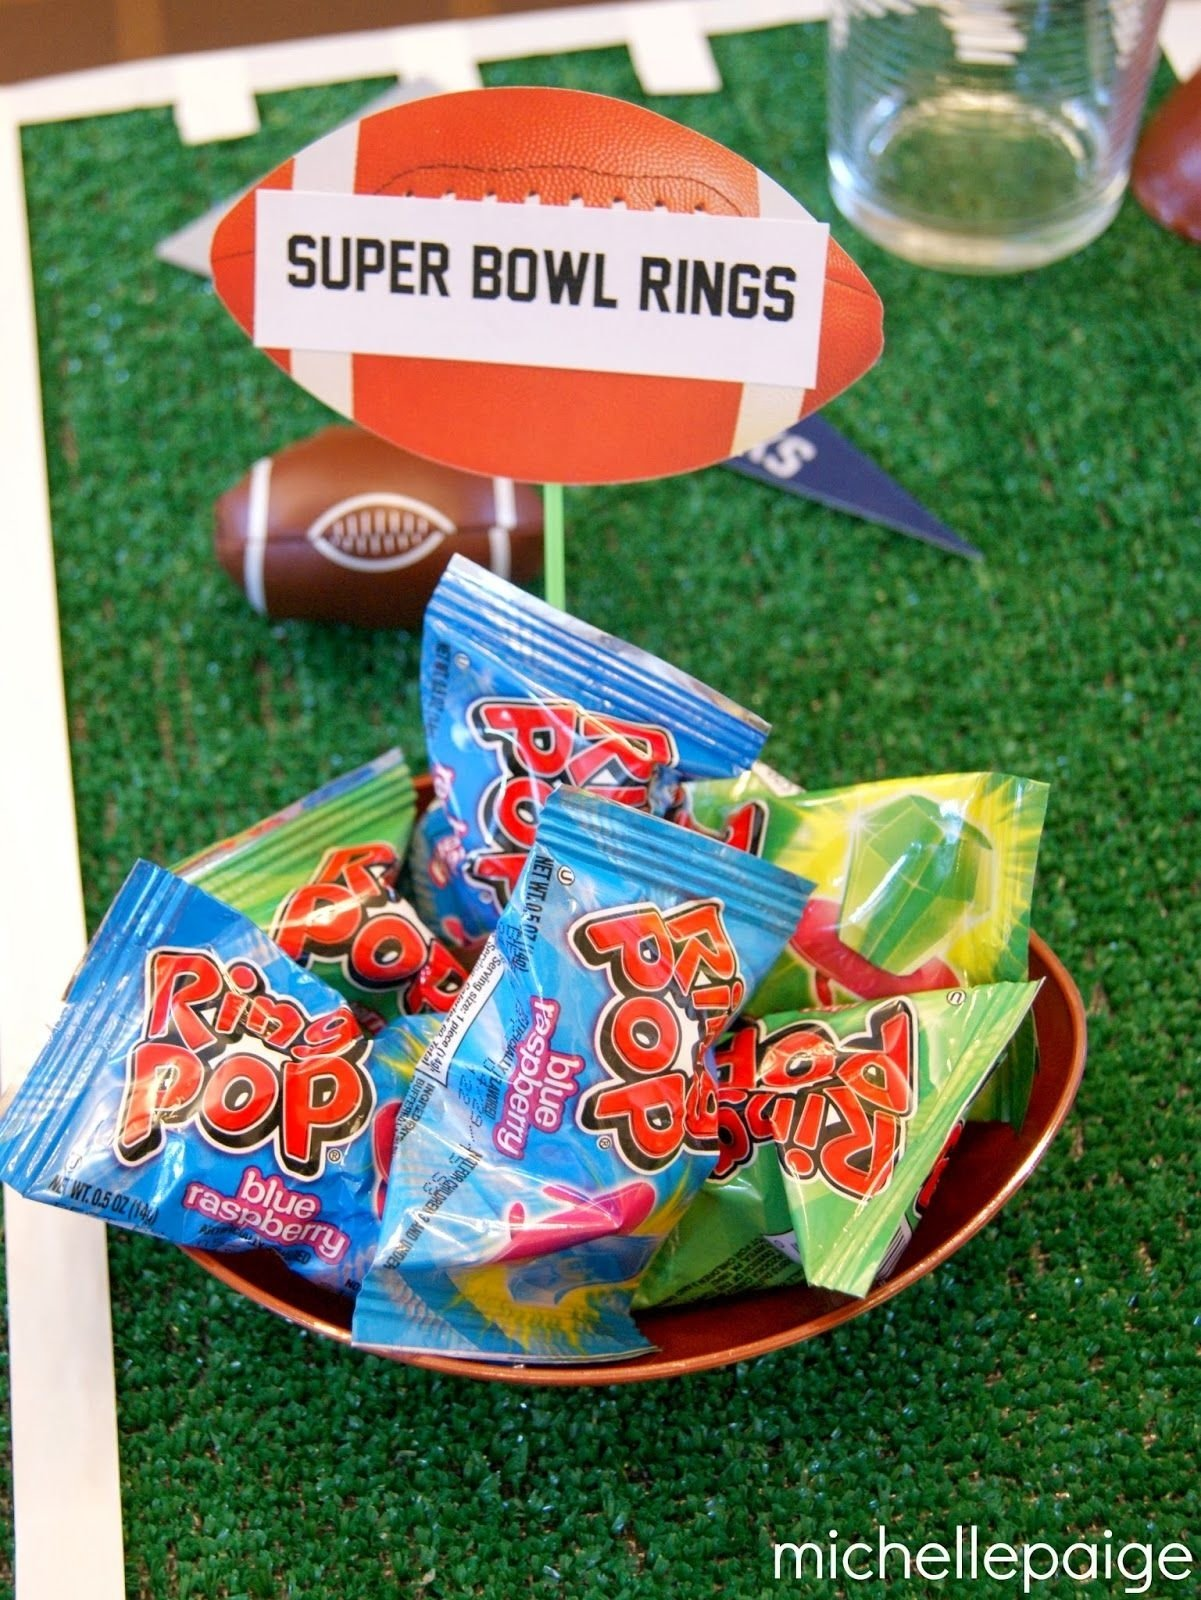 10 Stylish Football Party Ideas For Kids cute favor idea for football or super bowl party birthday party 1 2021